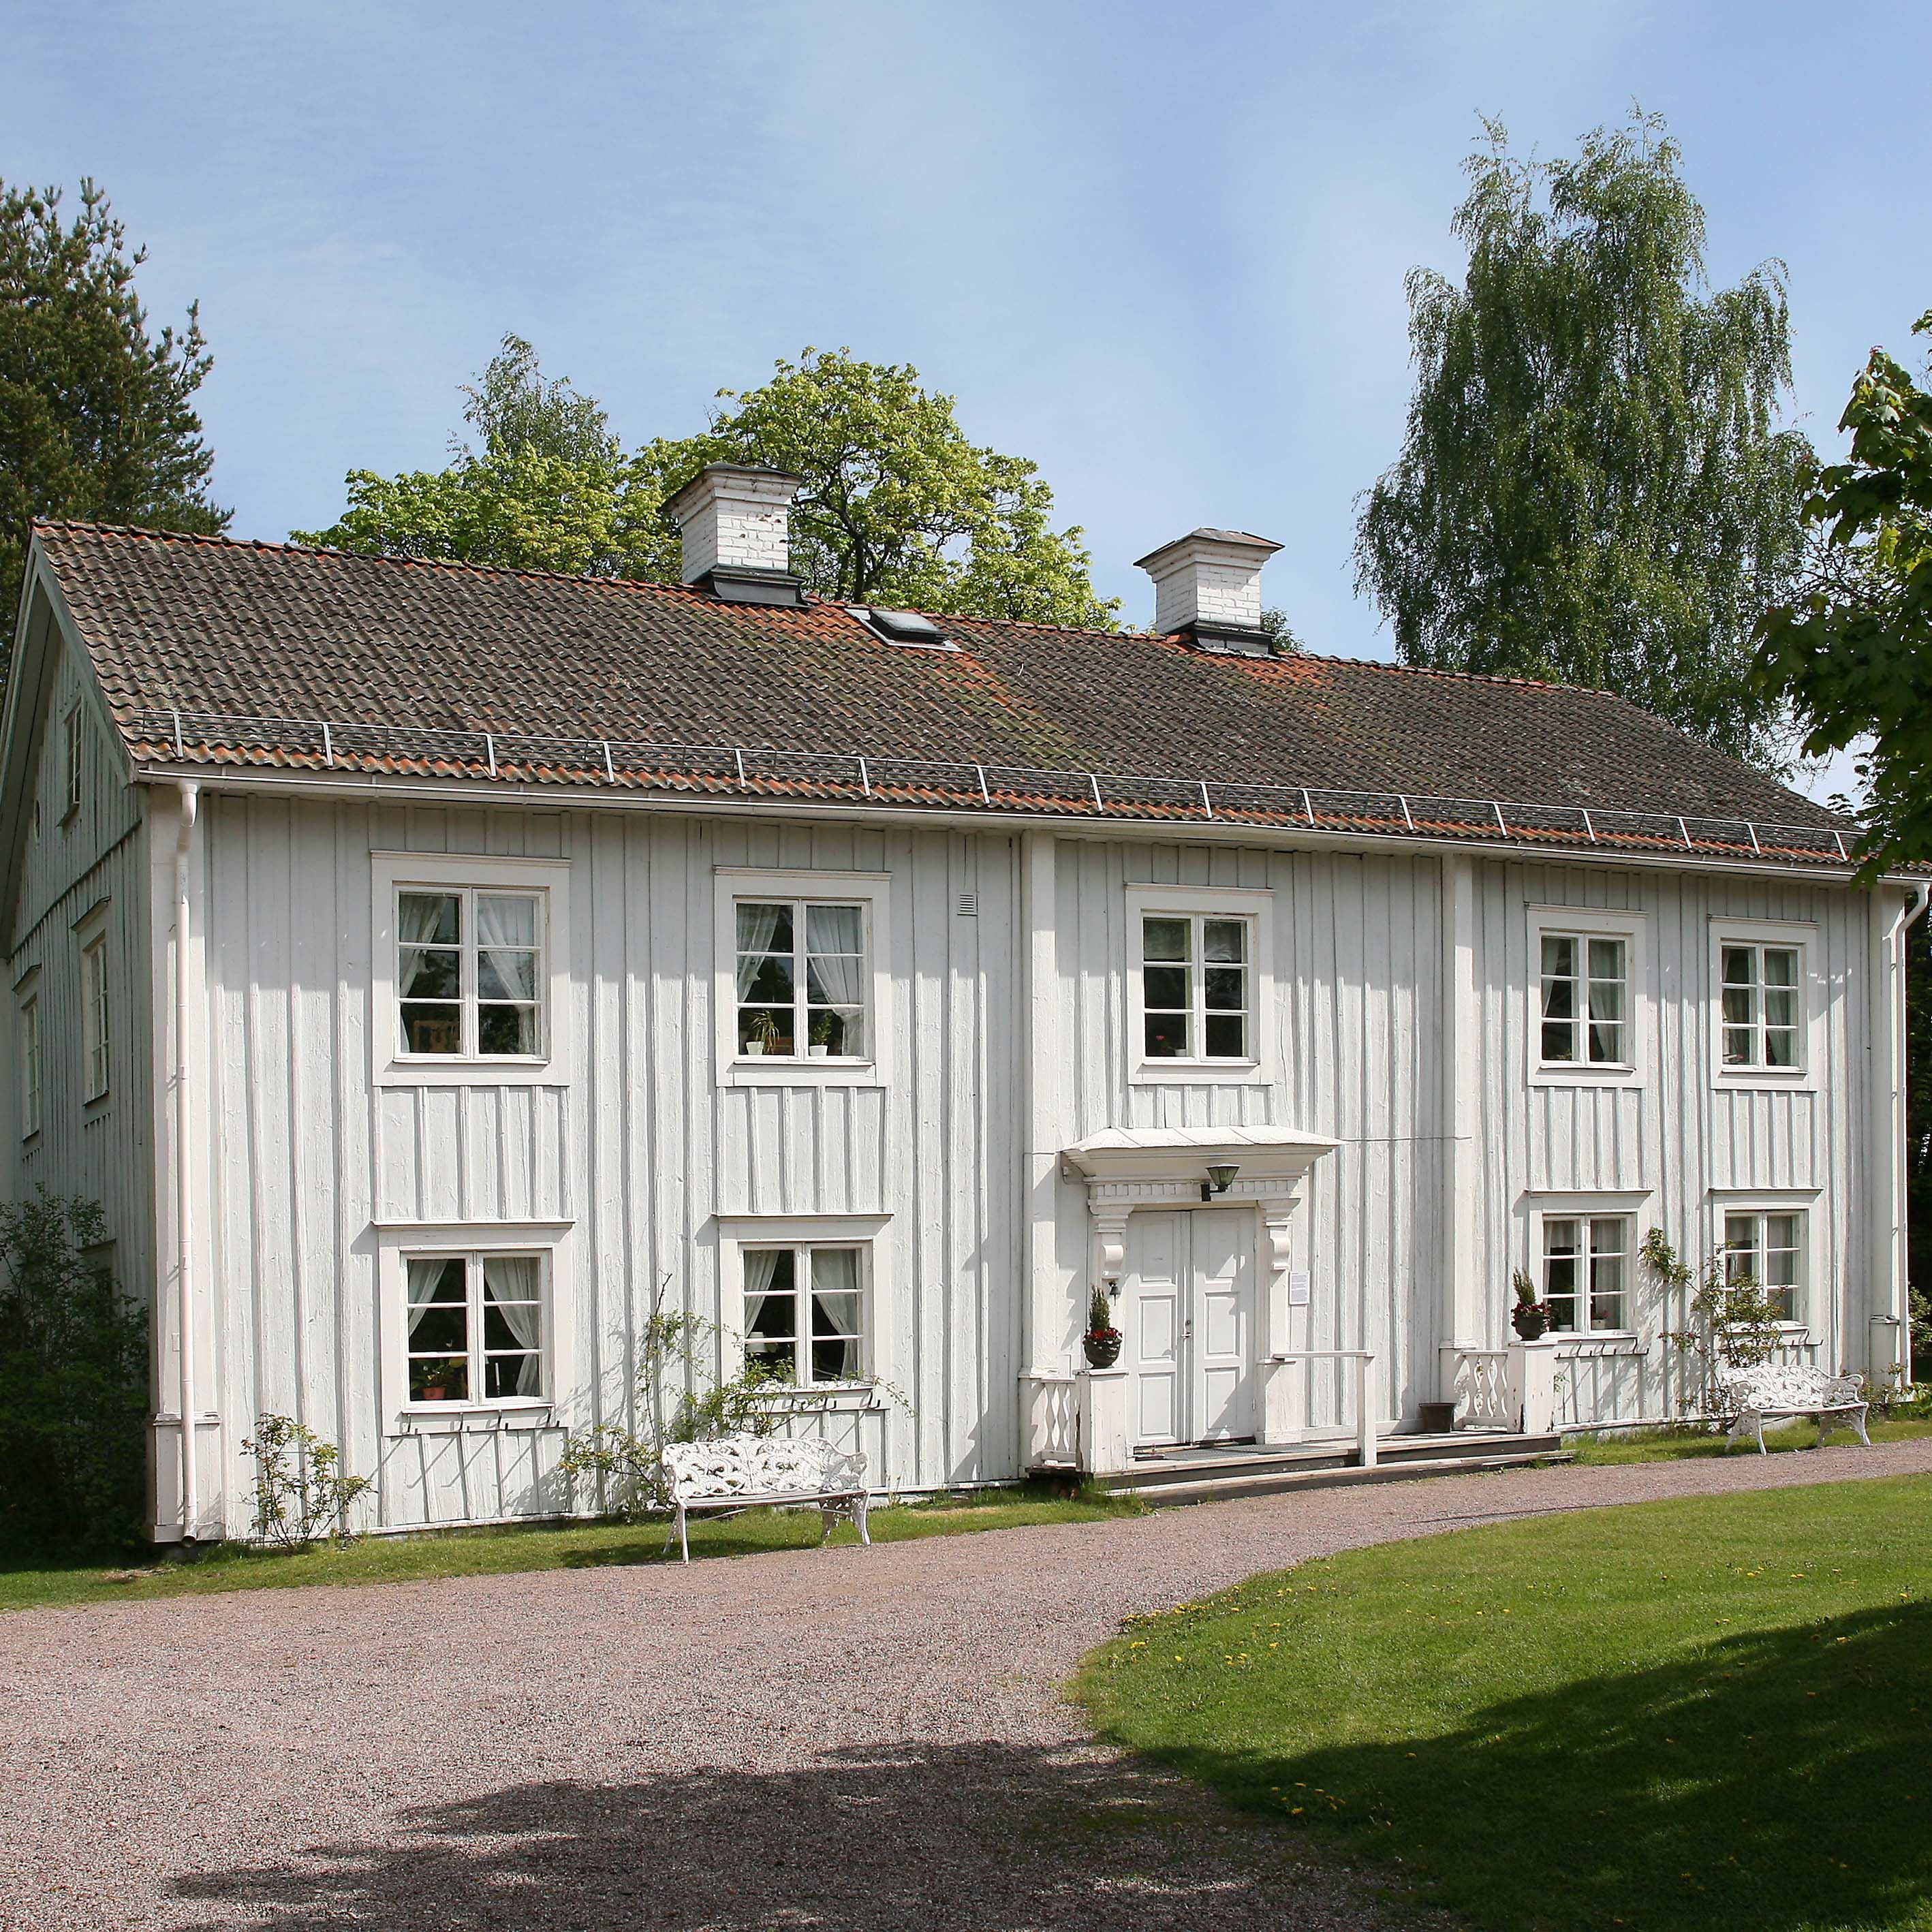 Bicycle trails: Café Tour in Avesta